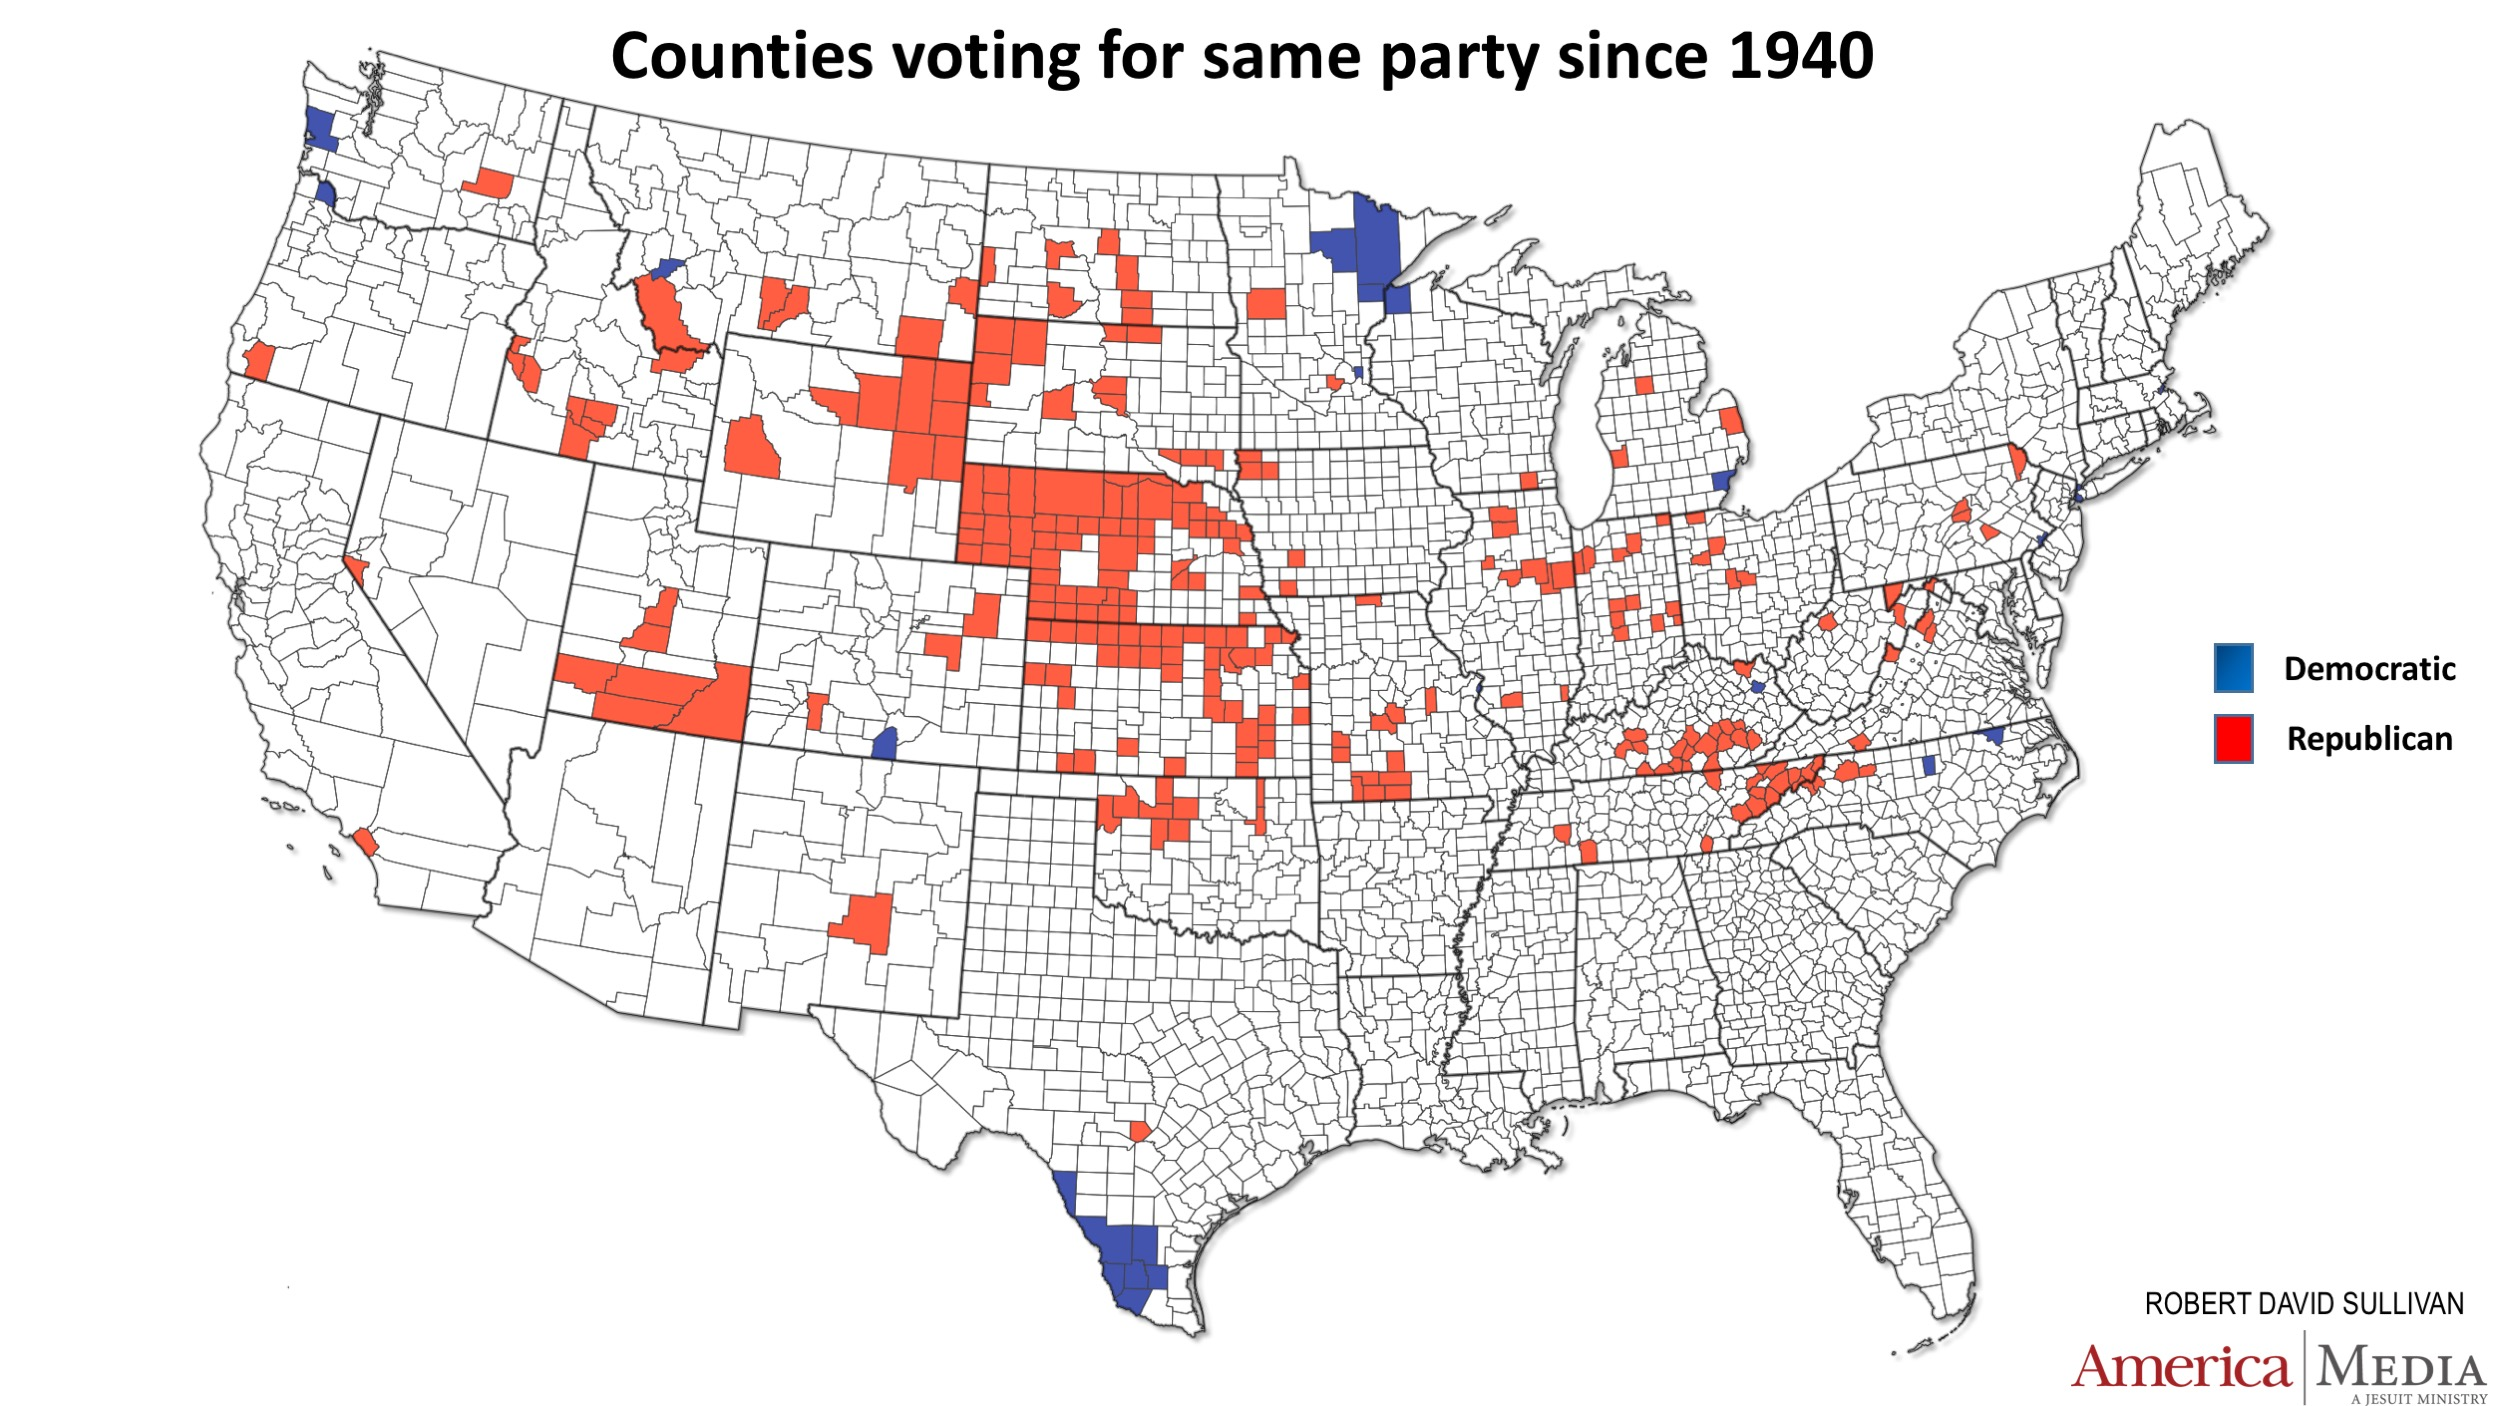 the blue counties on the map are simply the ones that remained after the democratic base in texas melted away over the 20th century